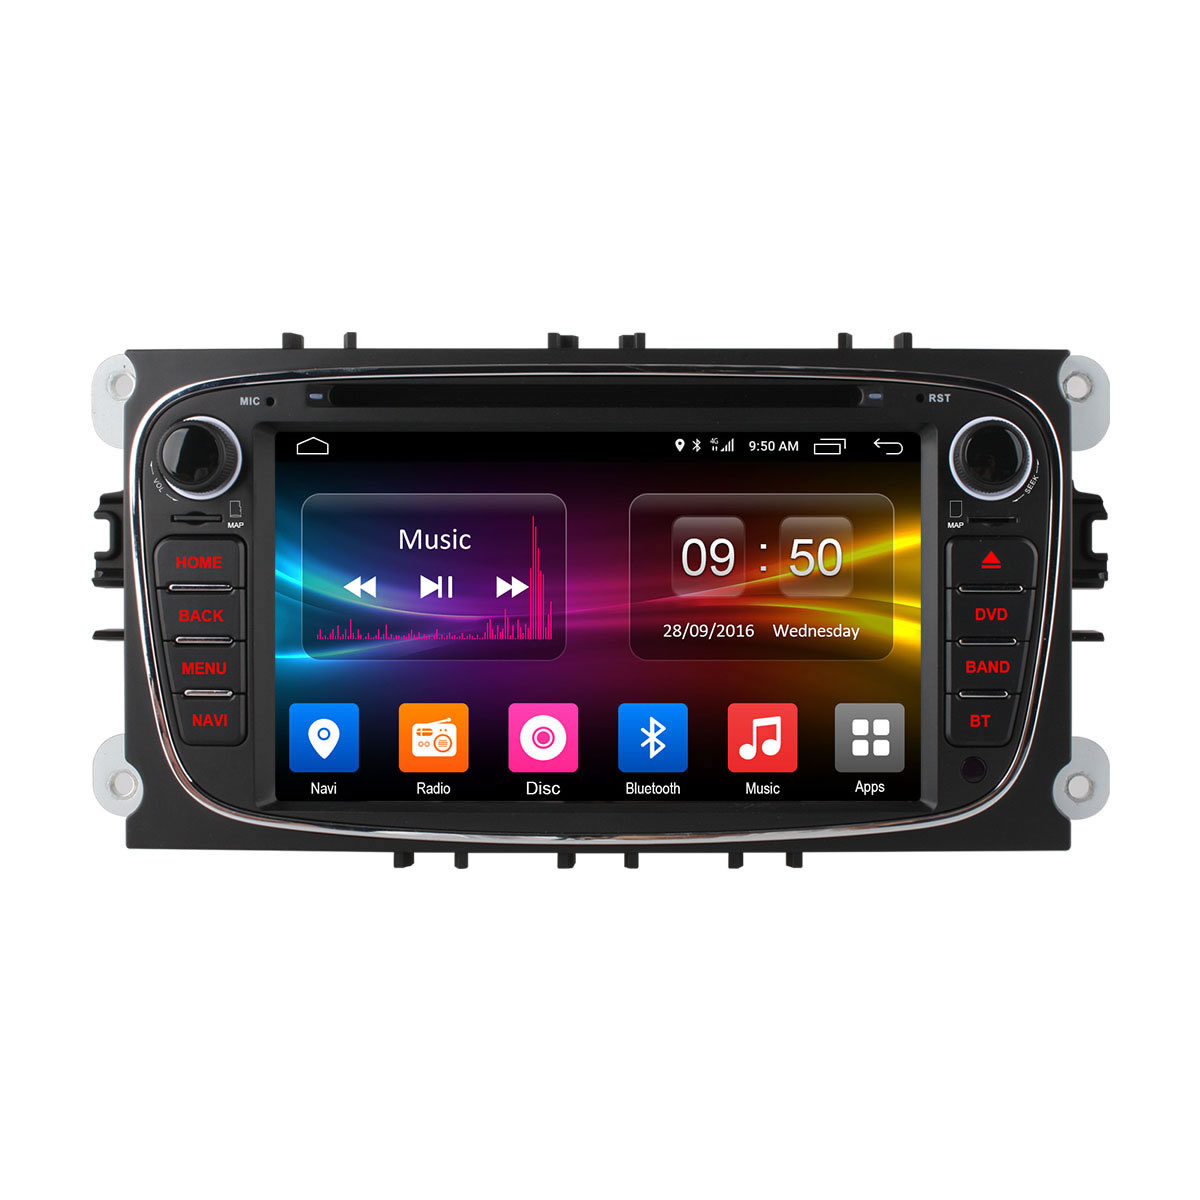 Штатная магнитола CARMEDIA OL-7202-8 (C500+) Ford Focus II, Mondeo, S-MAX, Galaxy, Tourneo/Transit Connect (цвет панели: черный) universal windshield cnc motorcycle fairing body work fasten bolts screws for yamaha mt 09 sr fz 09 2014 tdm 900 2002 2003